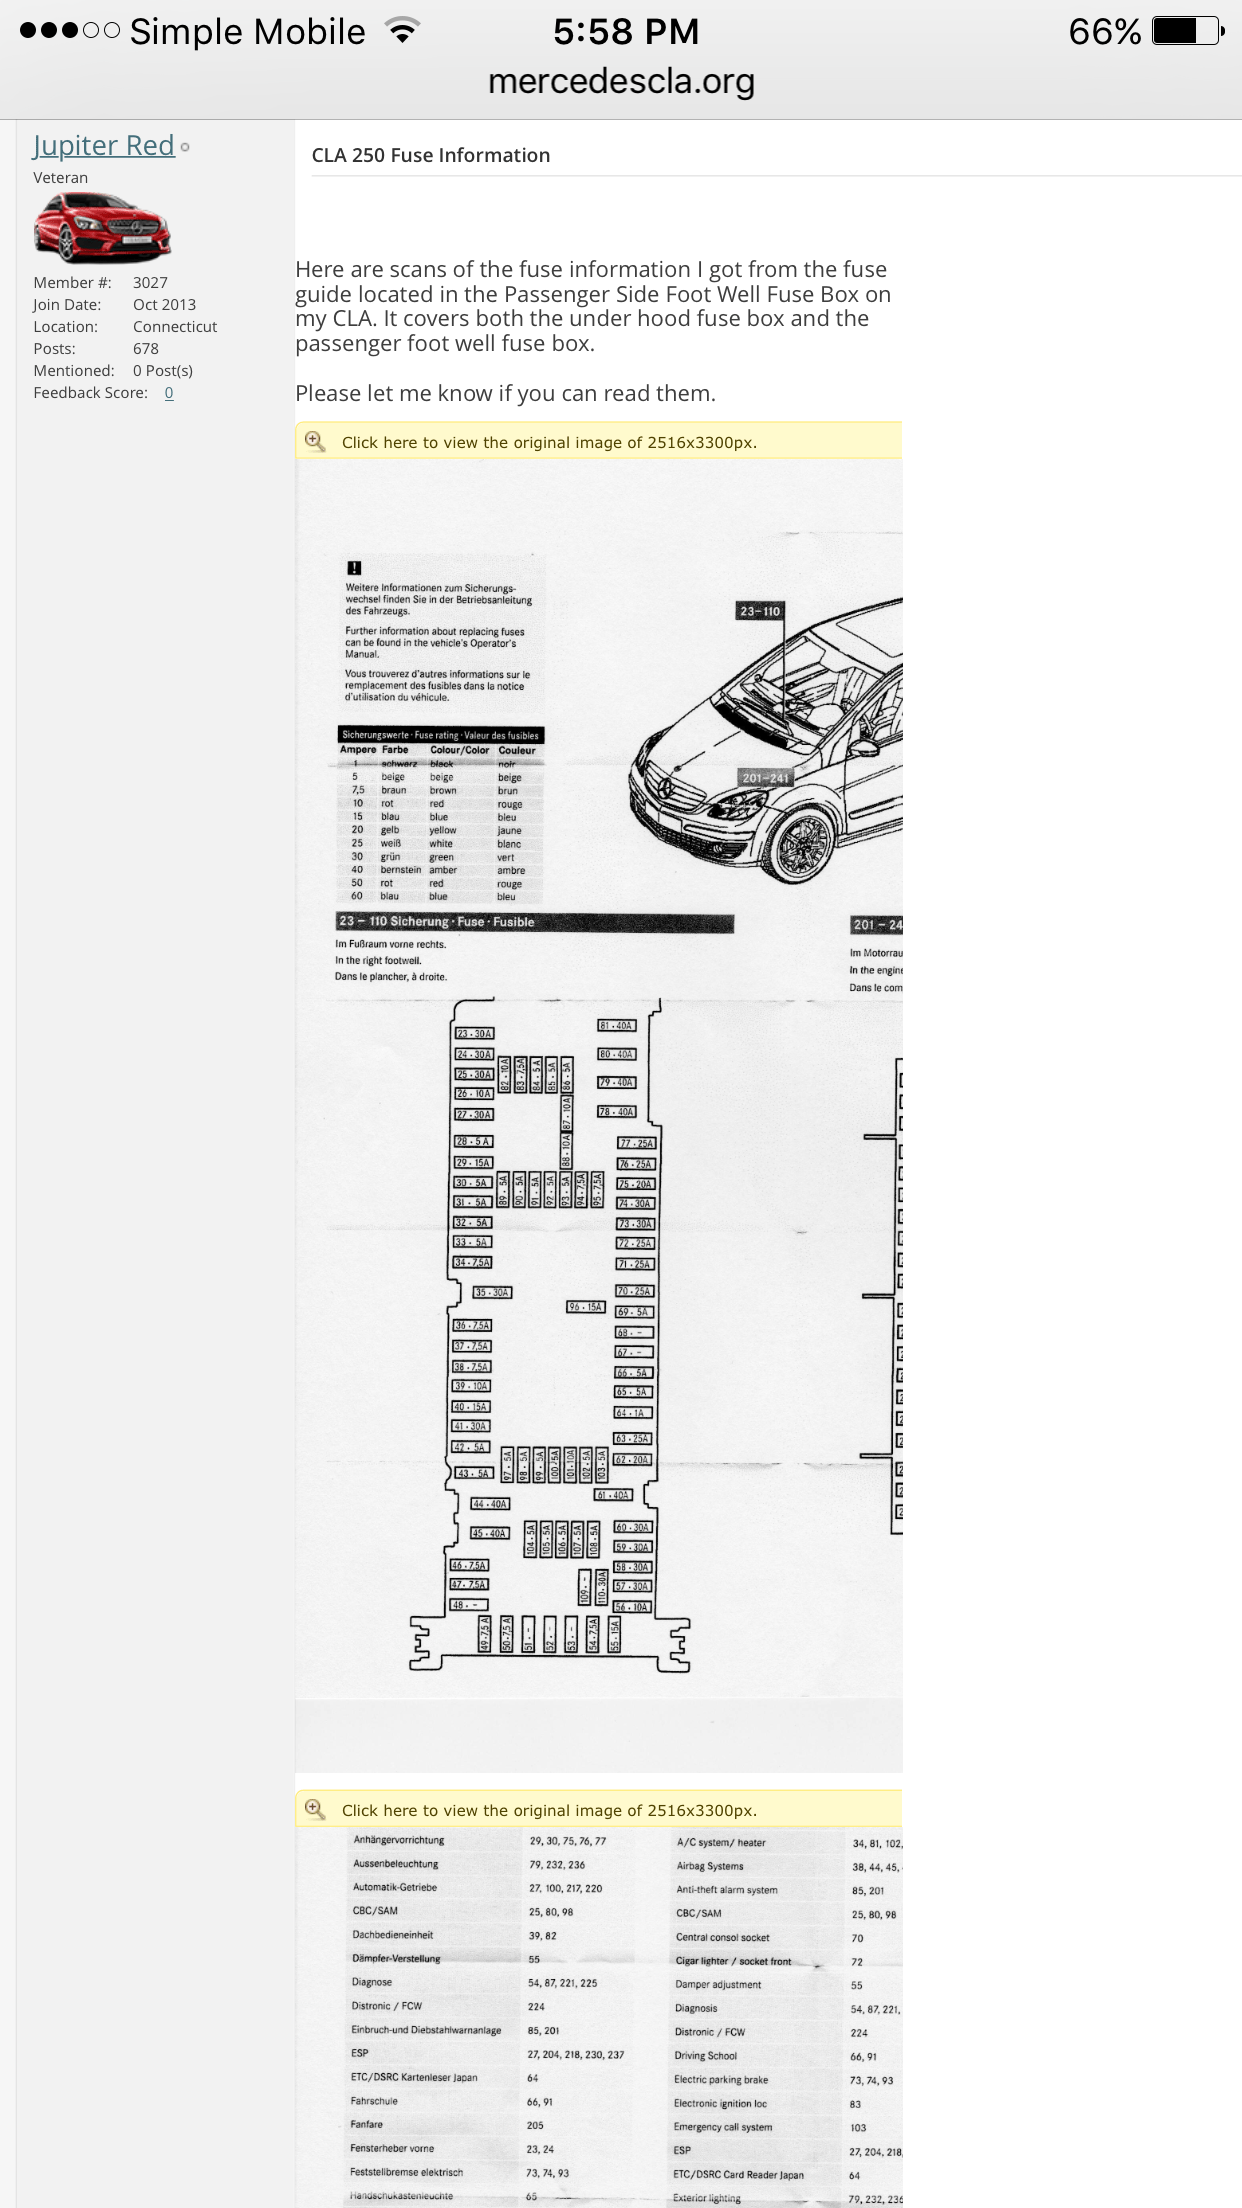 Mercedes Glk Fuse Box Diagram. Mercedes. Auto Wiring Diagram